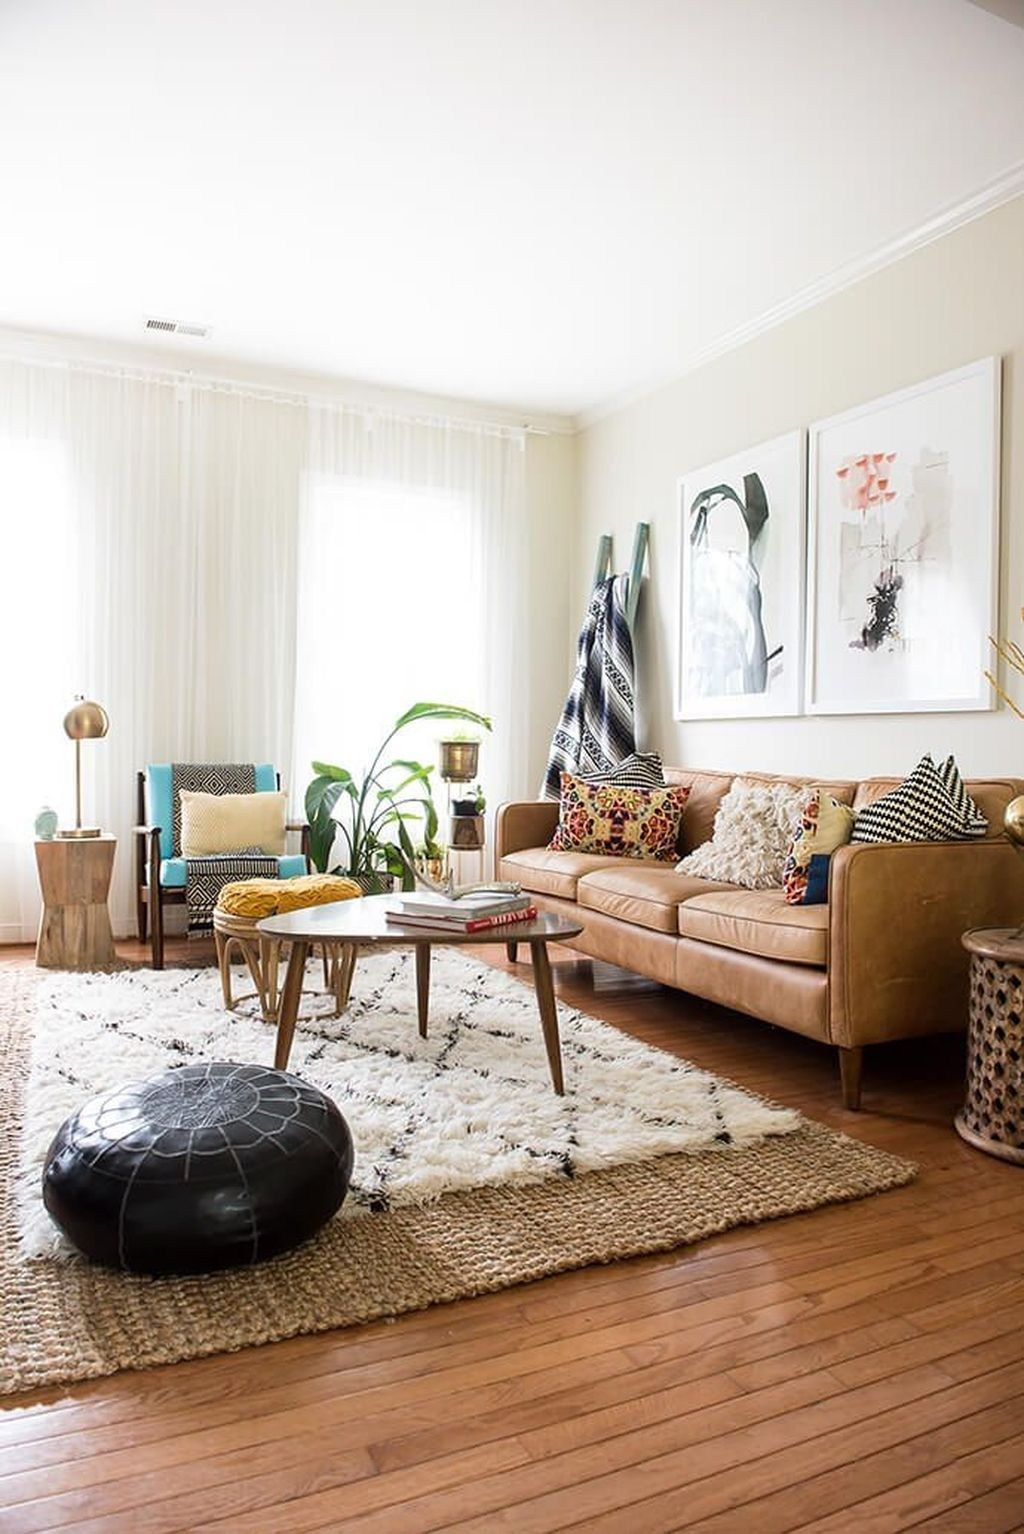 Stunning Rug Layering Design Ideas For Your Living Room 66 | Living ...